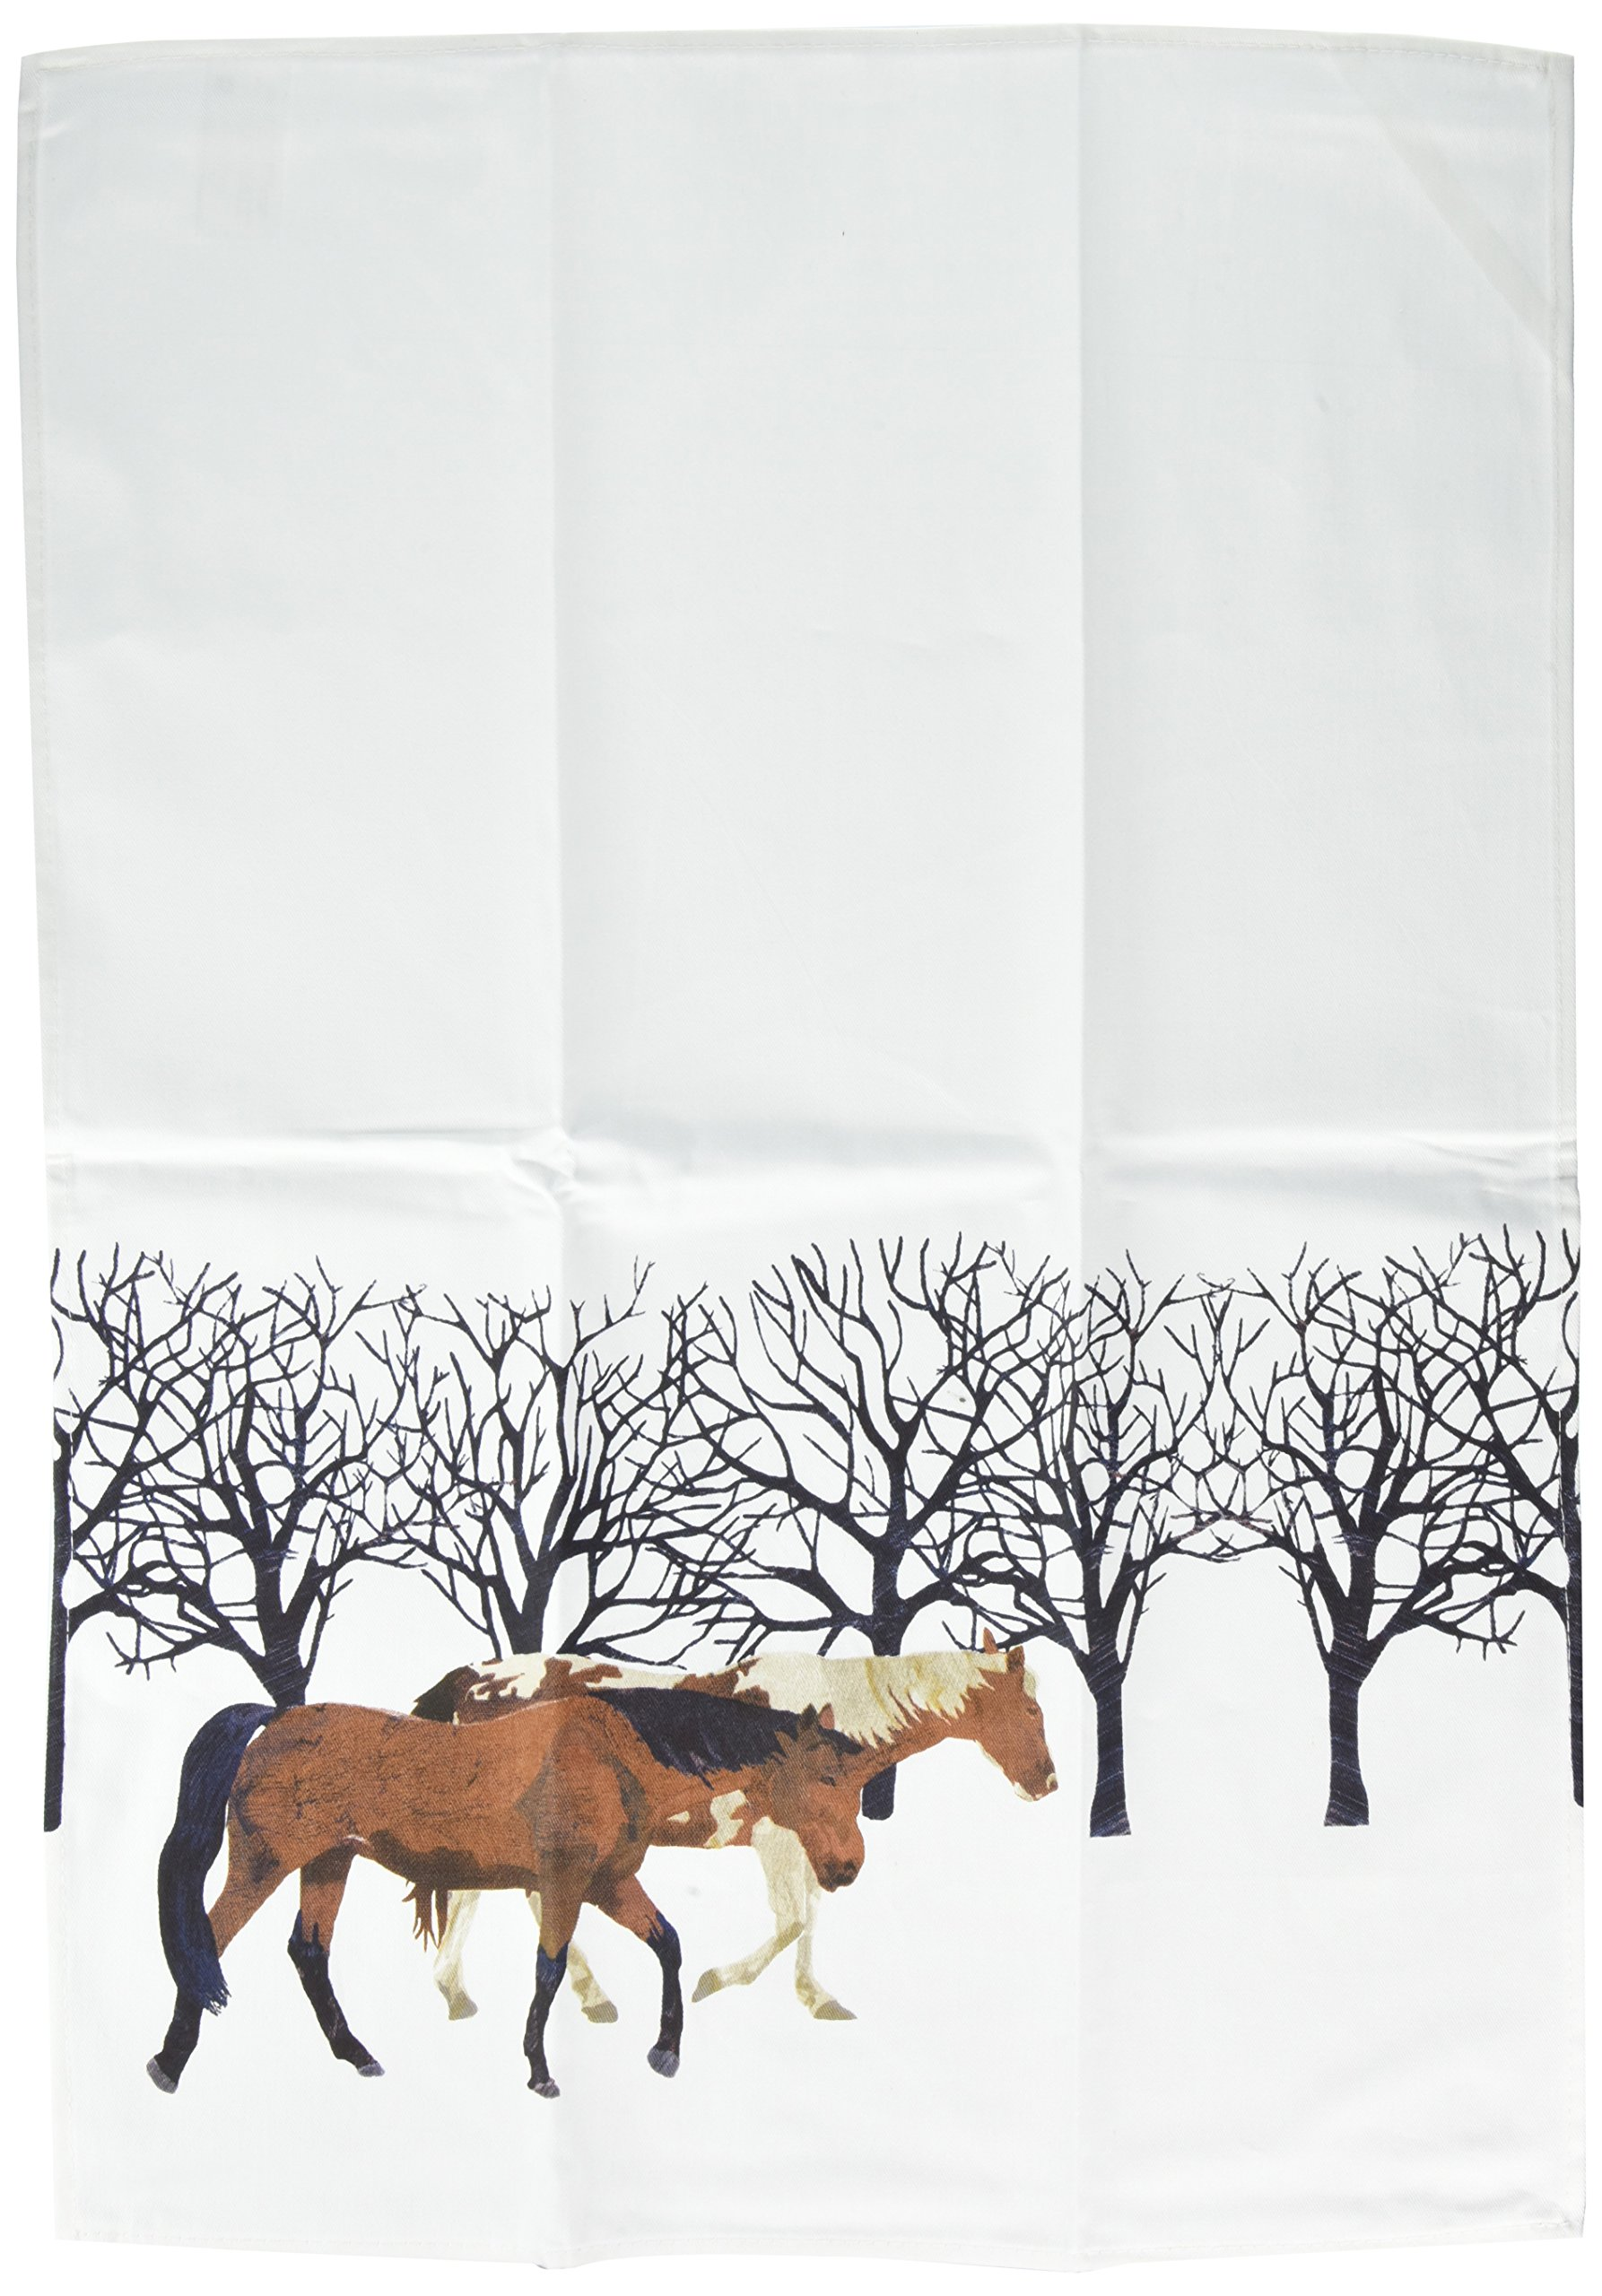 Paperproducts Design Kitchen Towel Featuring Winter Horses Design, Multicolor